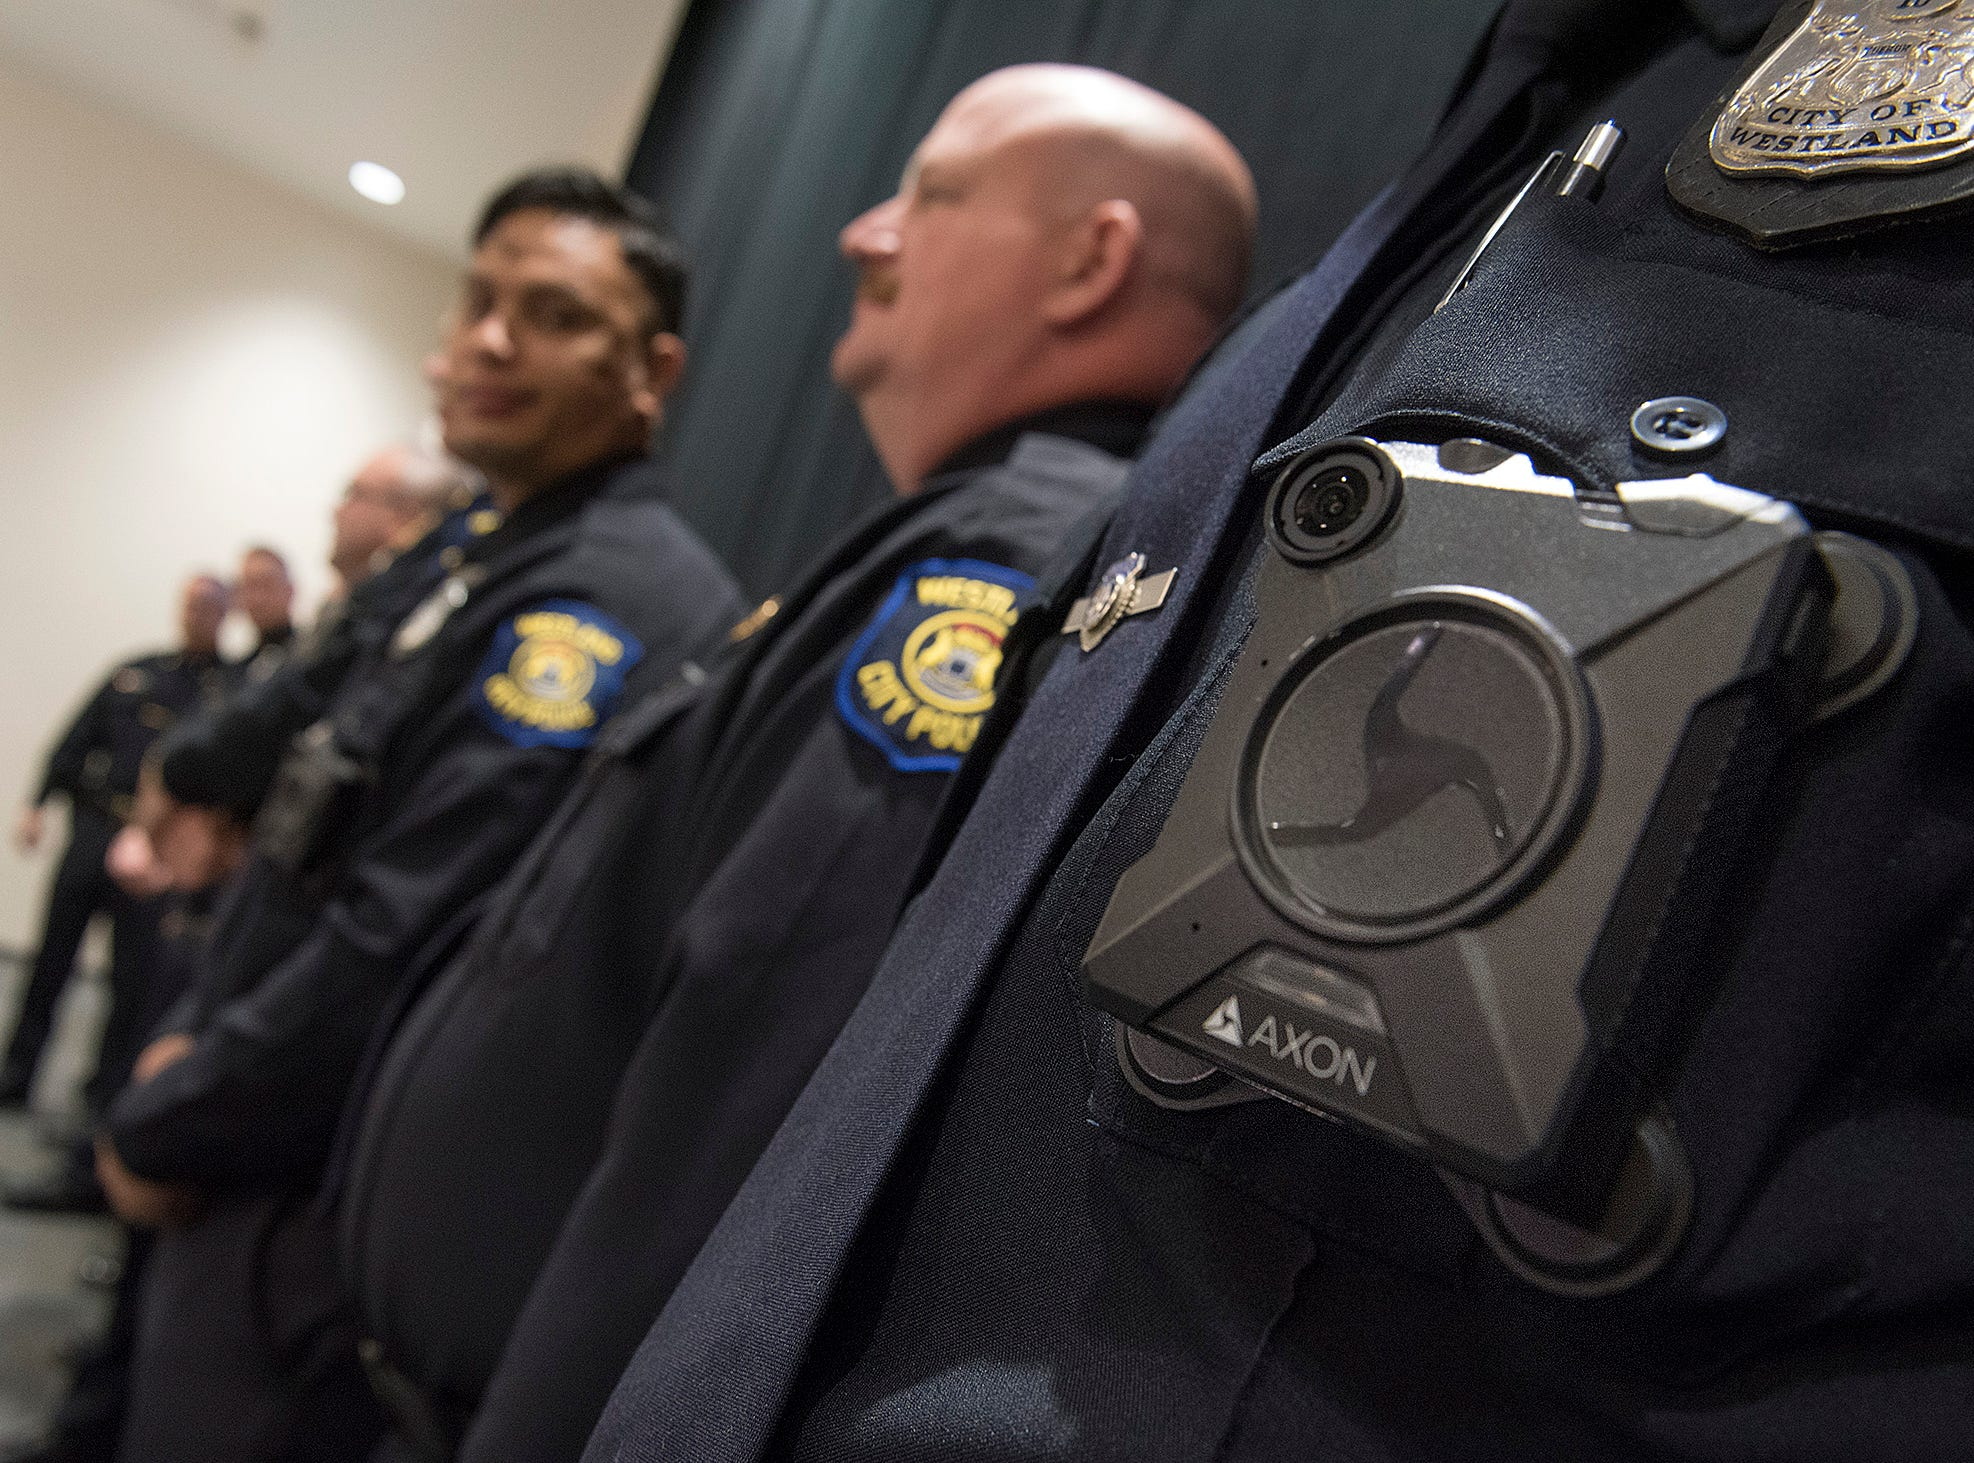 New police body cameras in Westland will help build trust, officials say